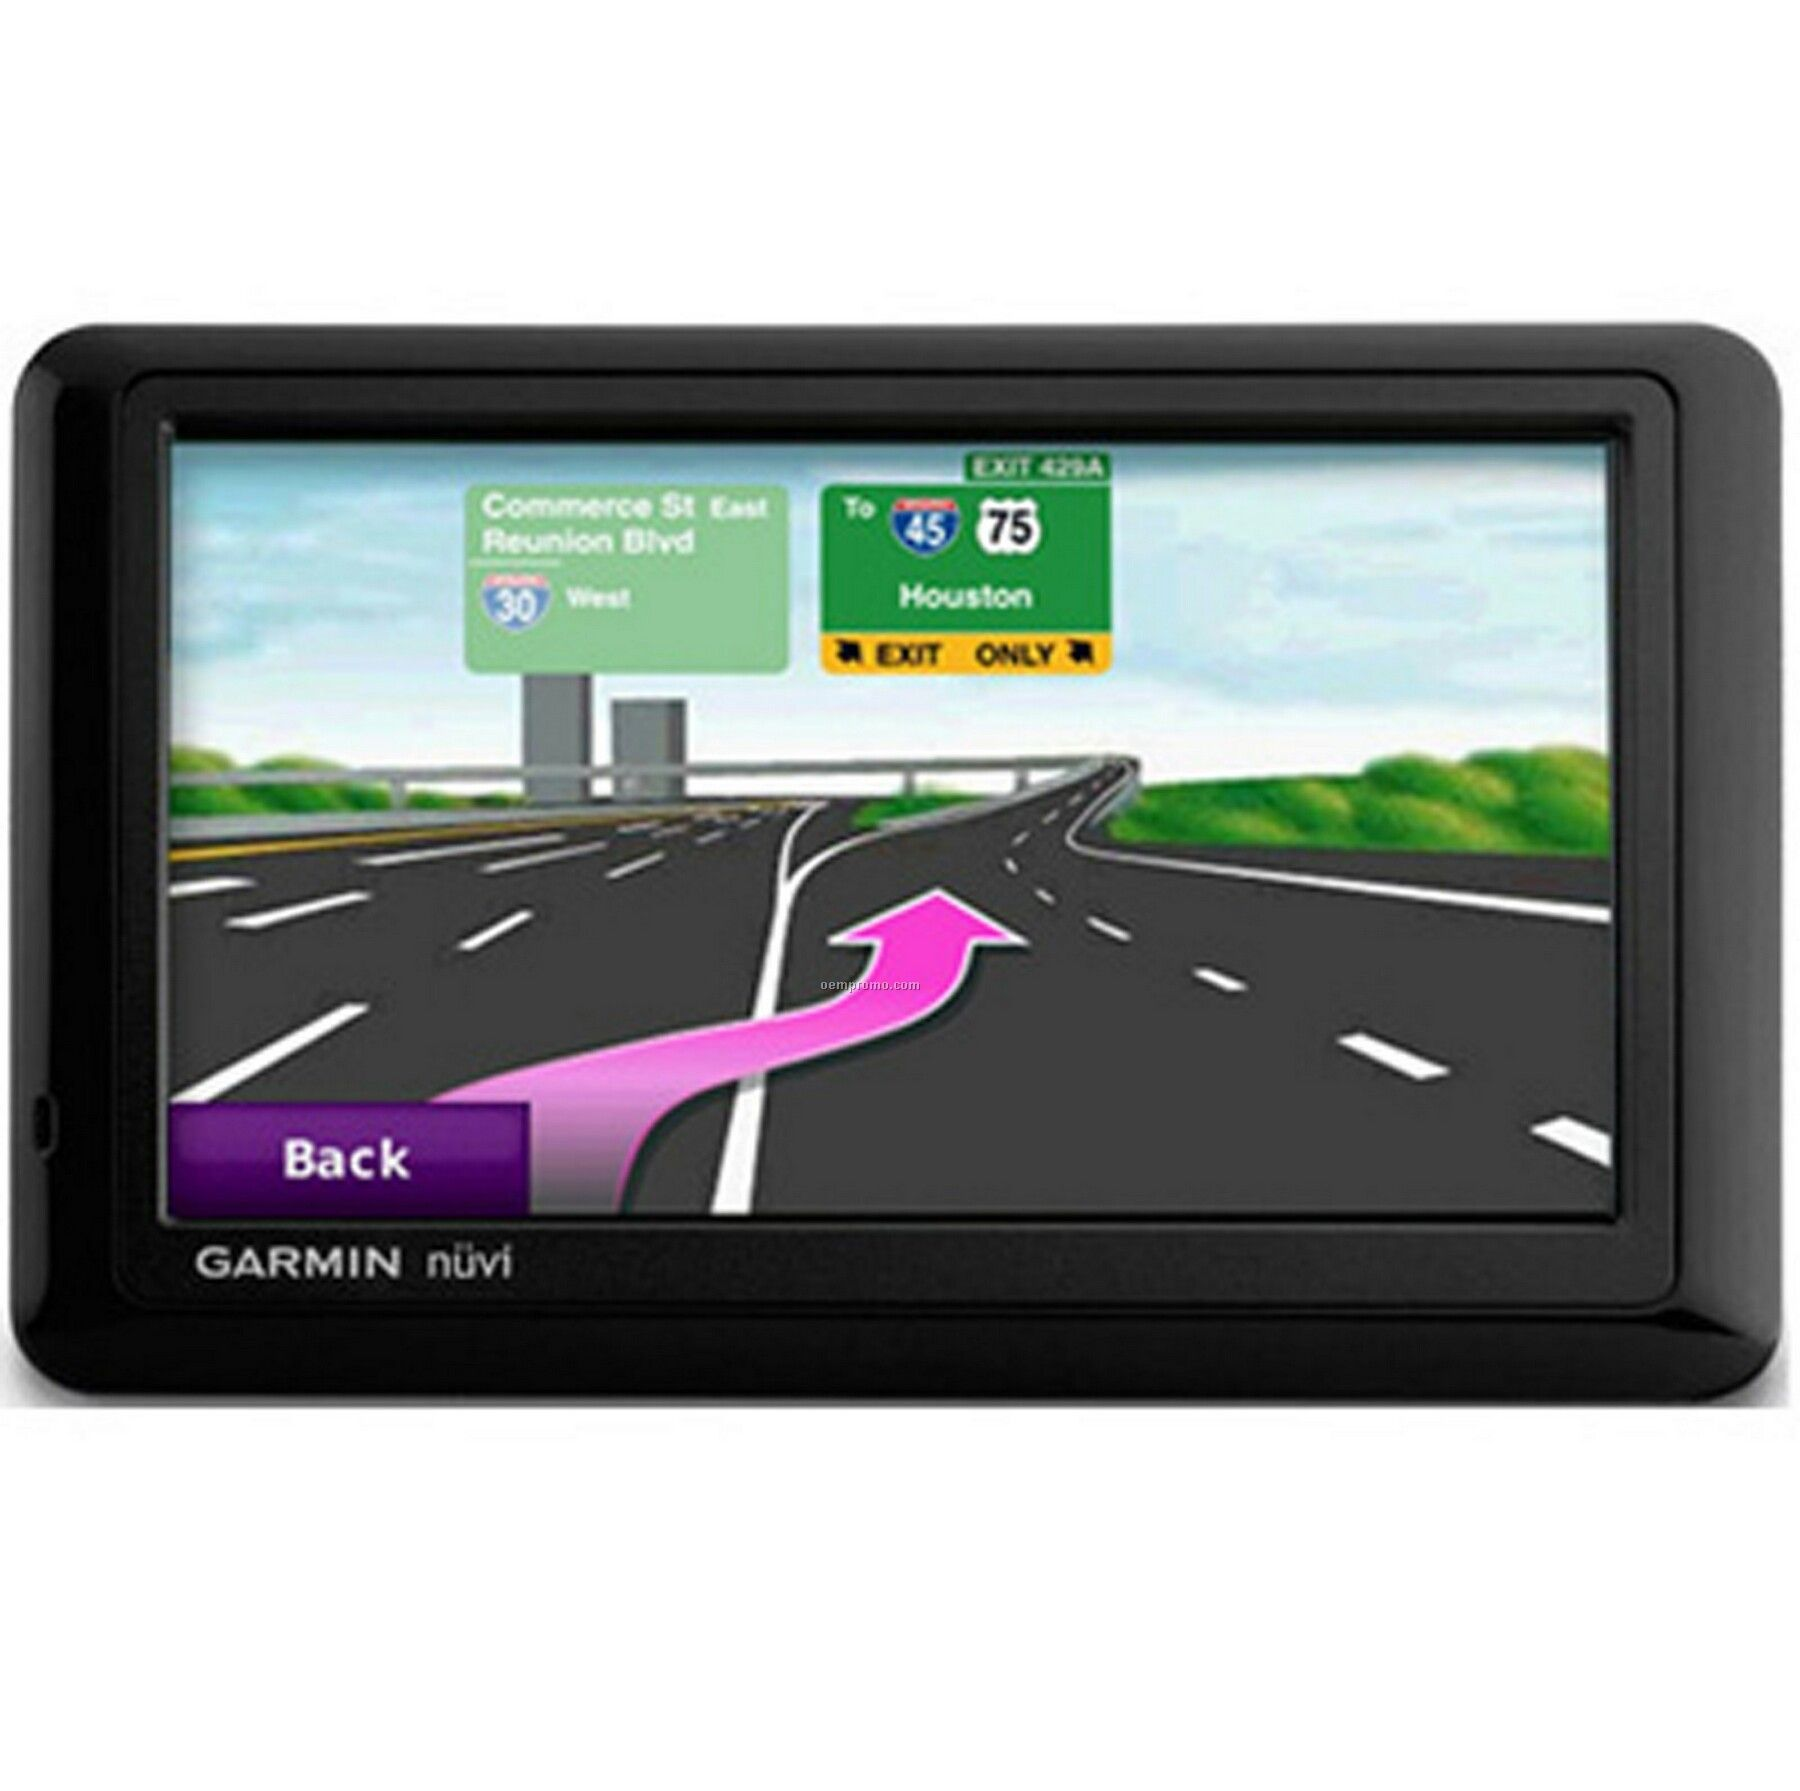 Vehicles with navigation systems